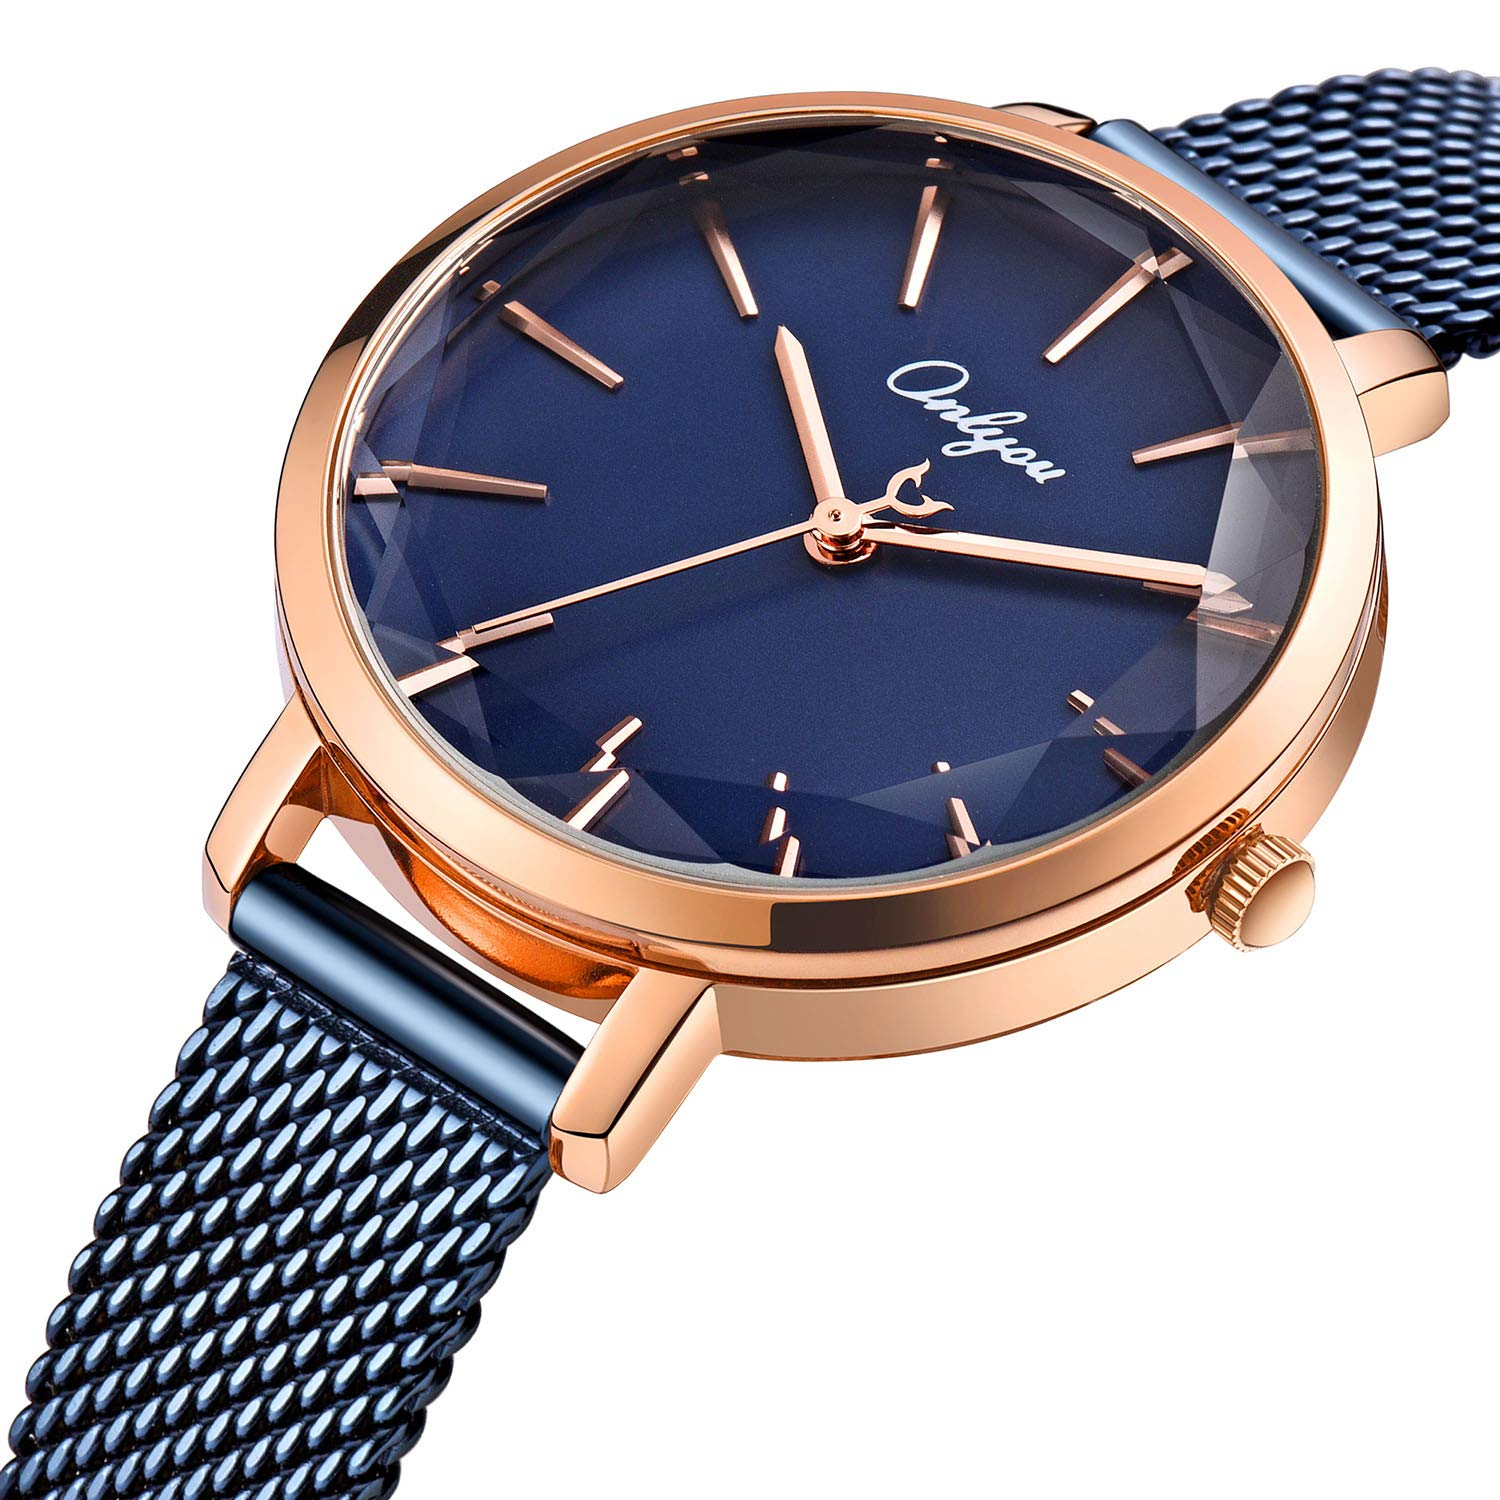 ONLYOU Women's Fashion Watches,Unique Face Design and 30M Waterproof,Analog Quartz Wristwatches with Stainless Steel Mesh Band (Blue) by onlyou (Image #2)